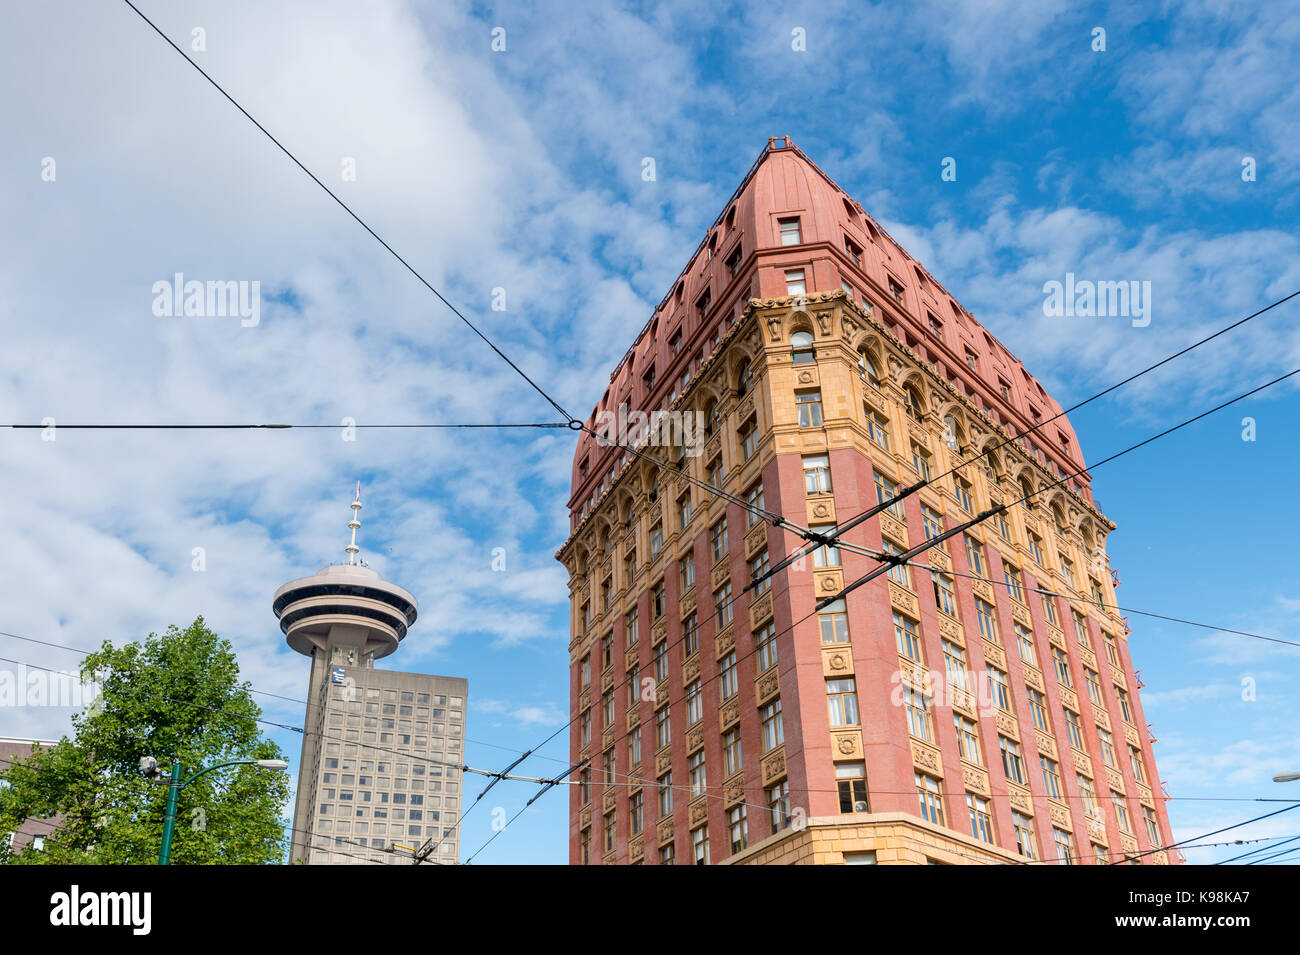 Vancouver gastown district stock photos vancouver for Building a lookout tower